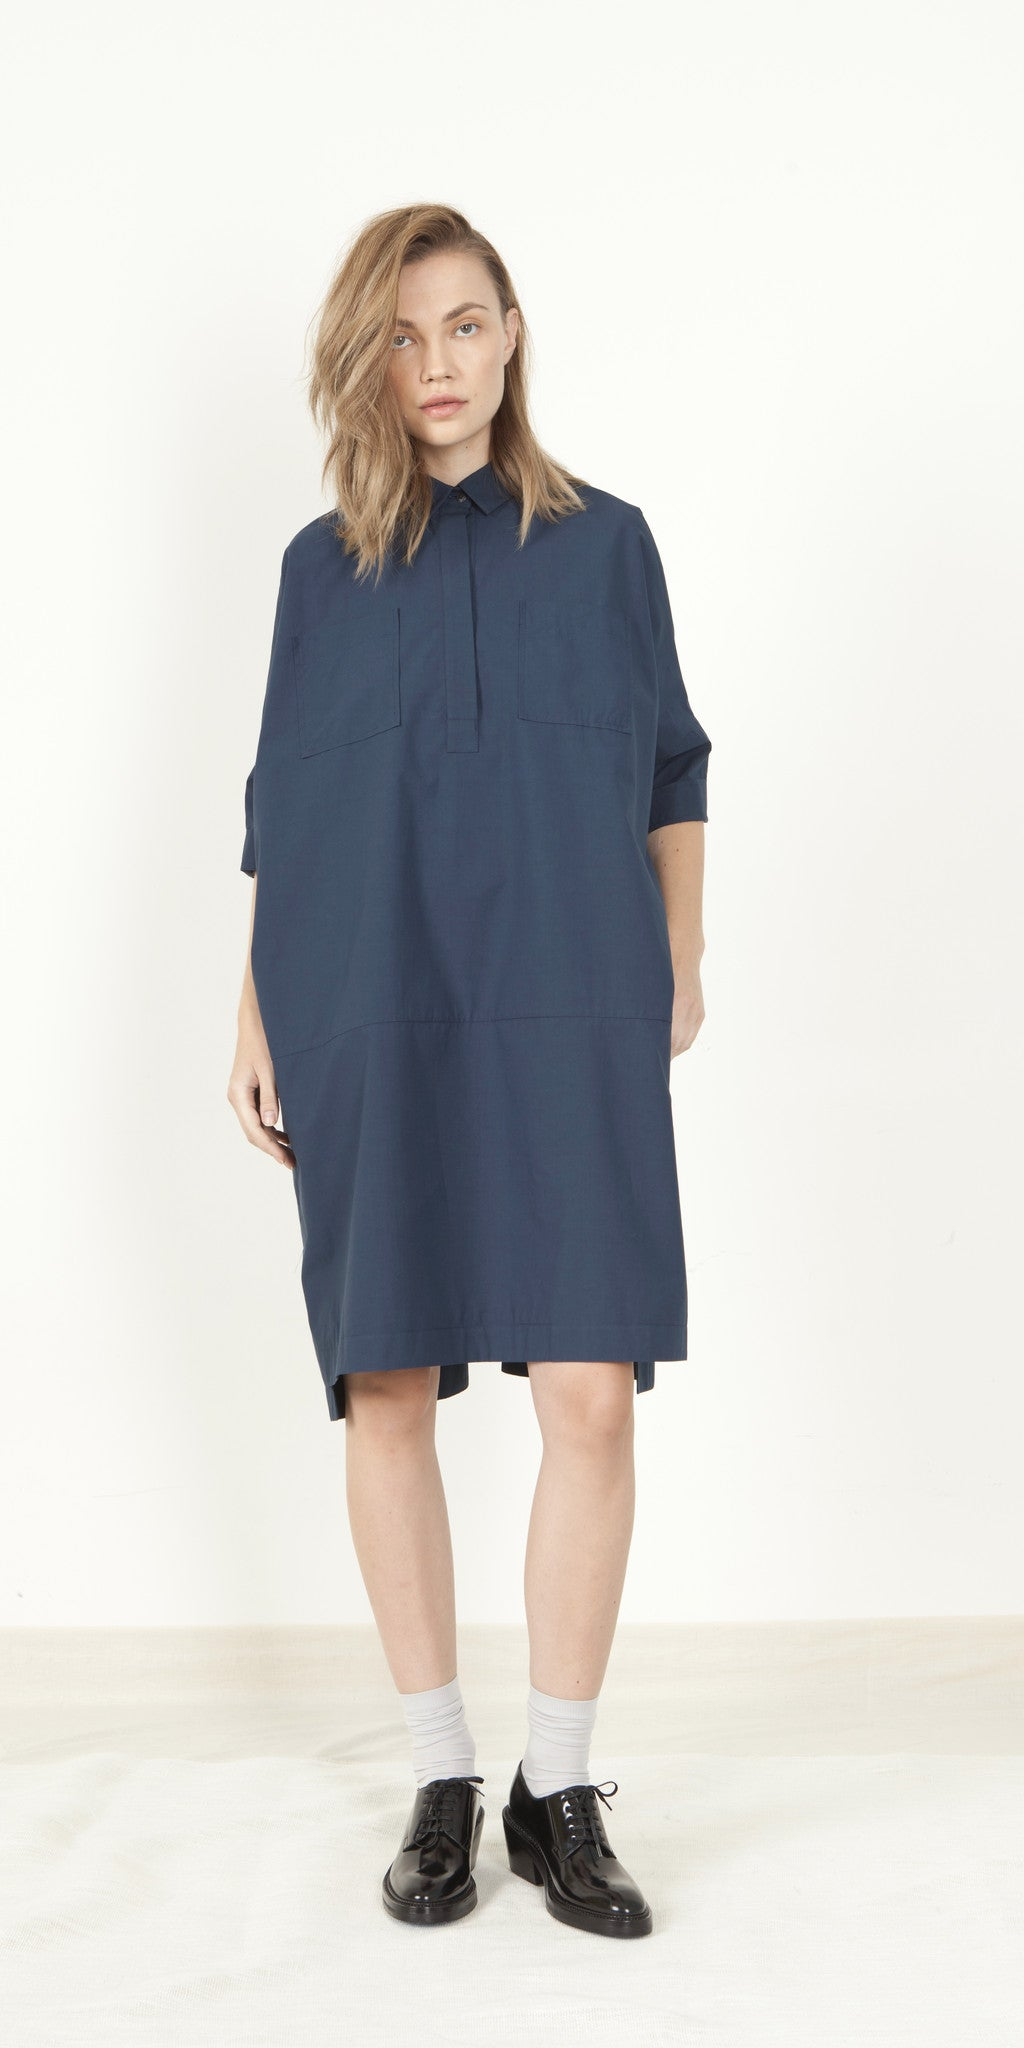 Néhmo Shirtdress